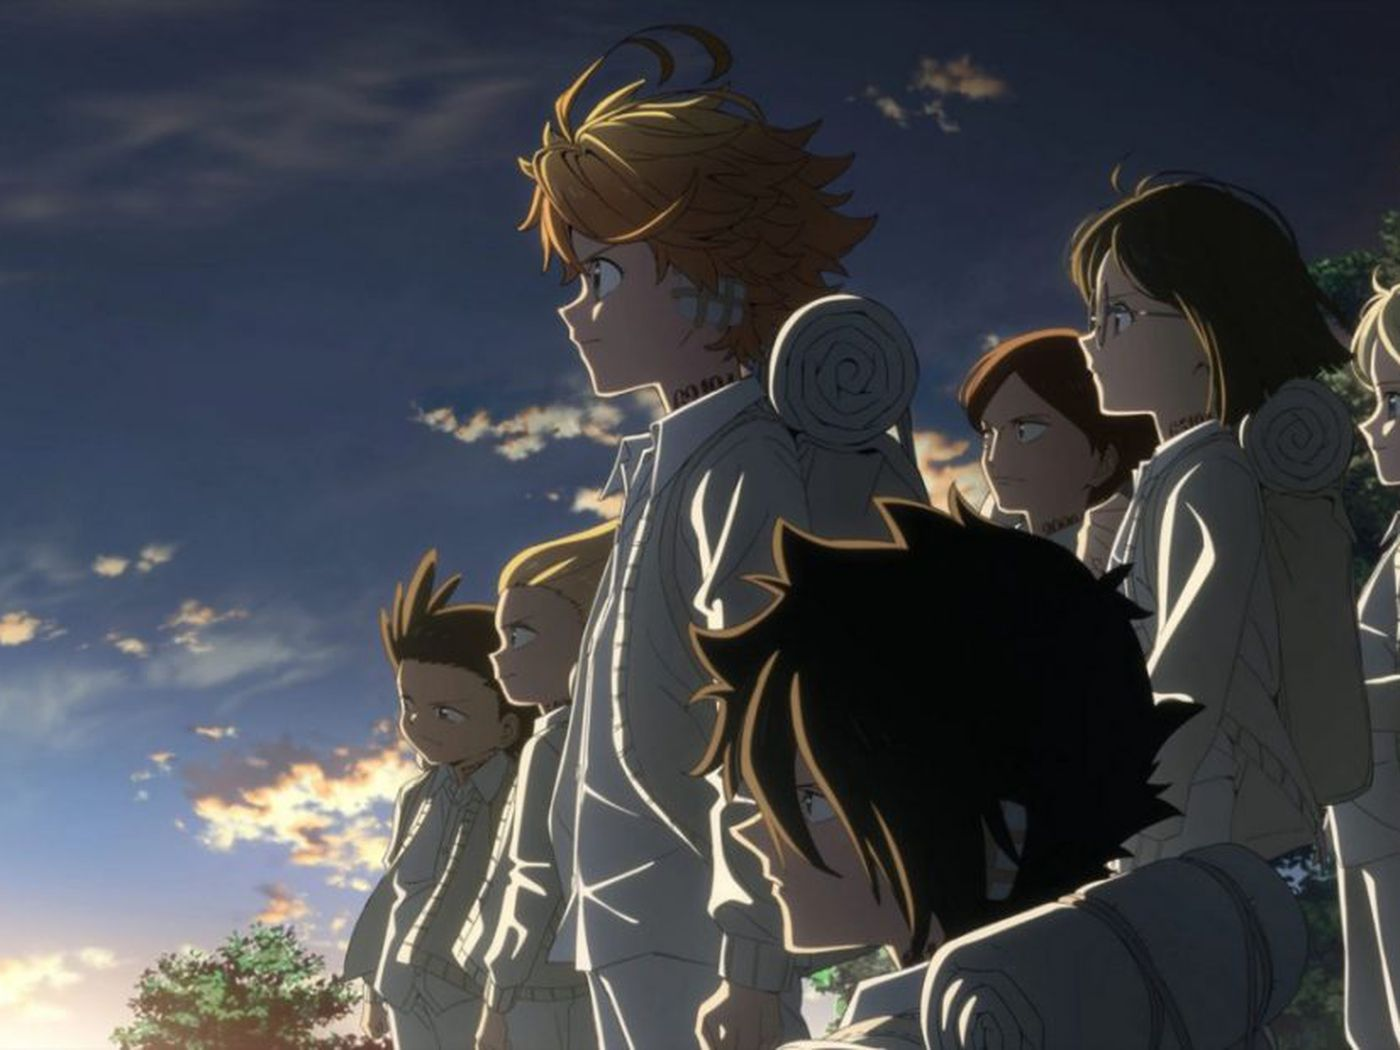 The Promised Neverland Outsold MHA and Haikyuu